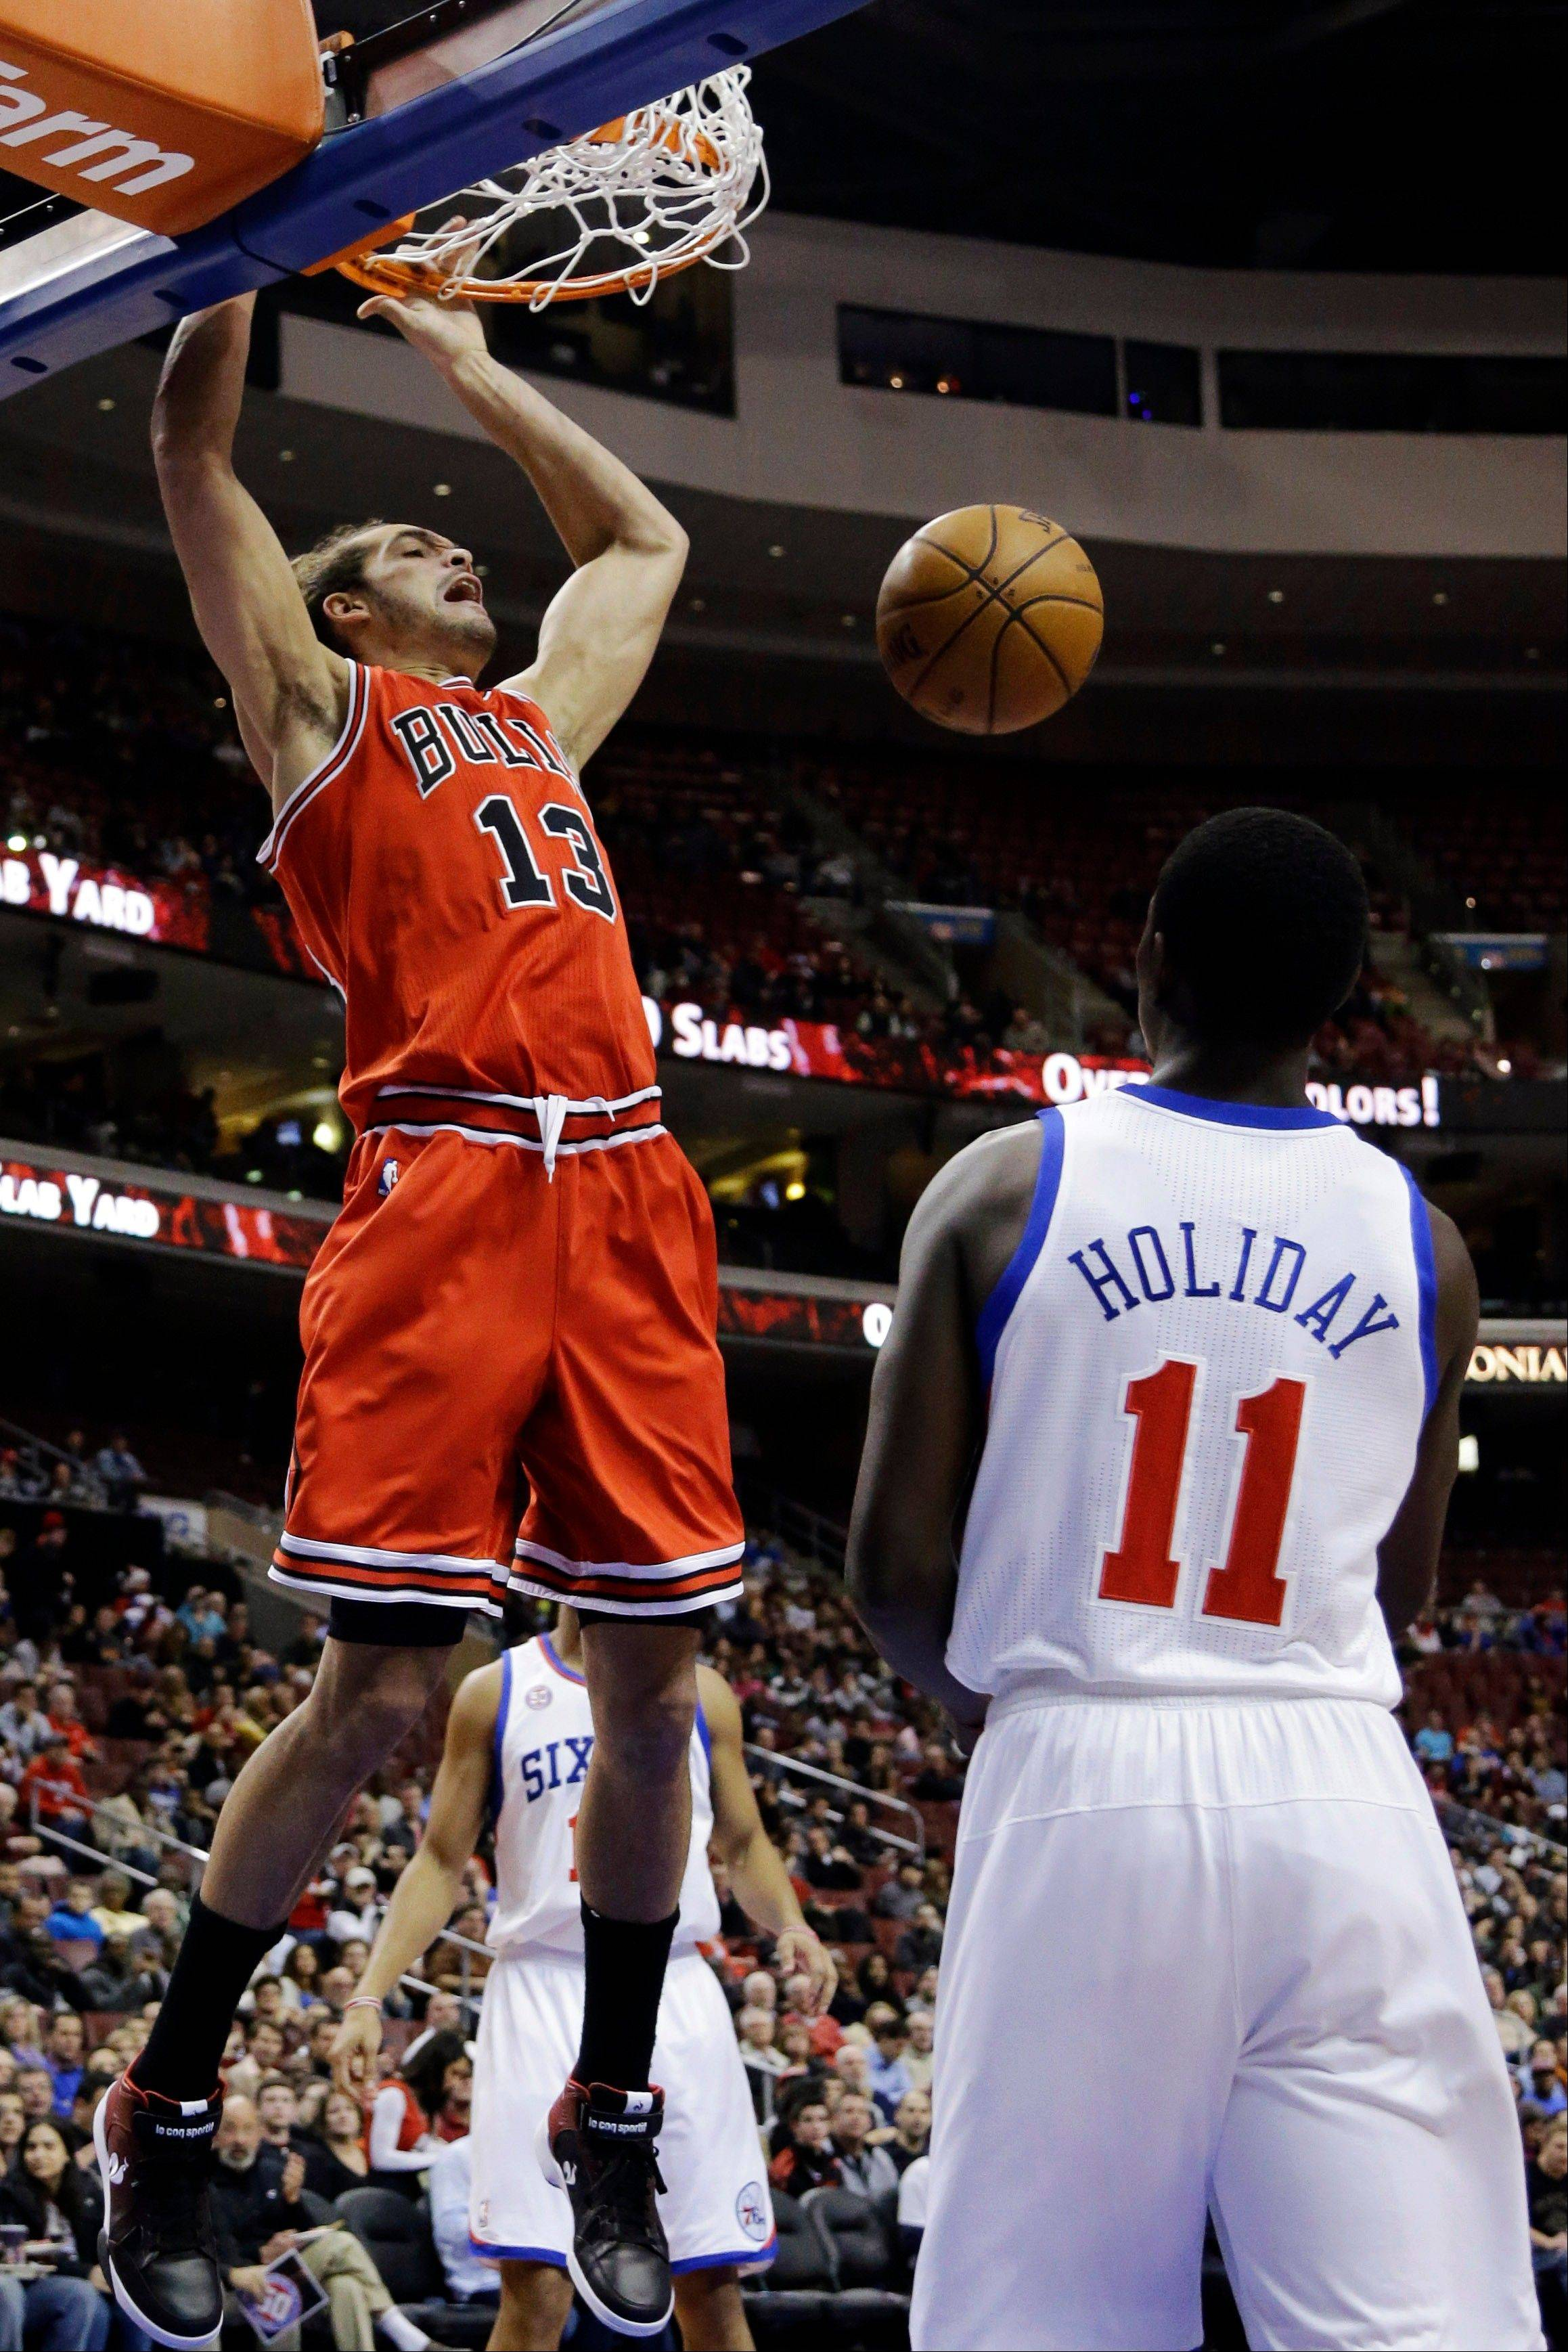 Chicago Bulls' Joakim Noah (13) dunks the ball as Philadelphia 76ers' Jrue Holiday (11) watches during the first half of an NBA basketball game, Wednesday, Dec. 12, 2012, in Philadelphia.